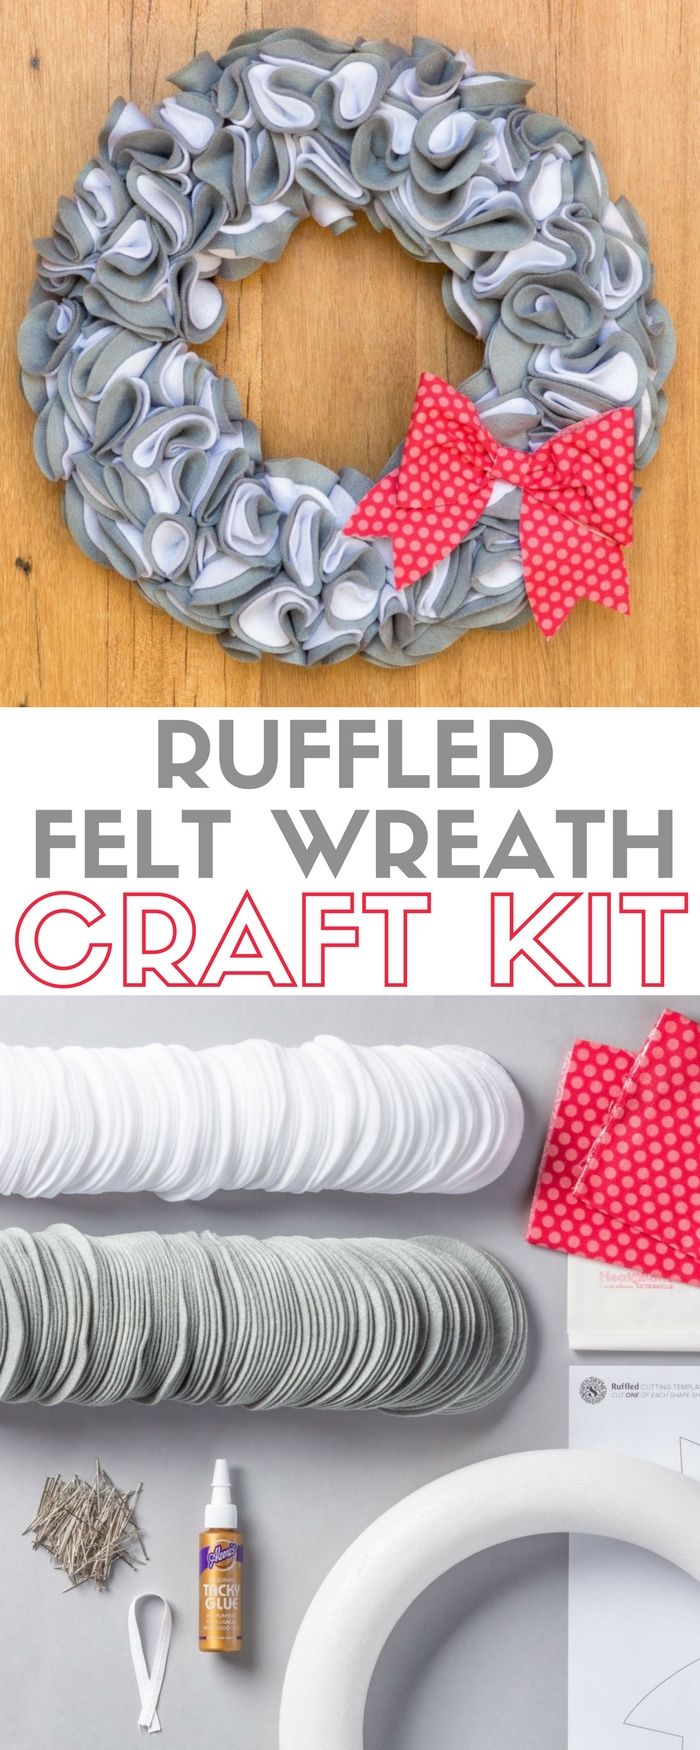 Ruffled Felt Wreath | Apostrophe S Craft Kit | For the Front Door |  DIY |  How to Make